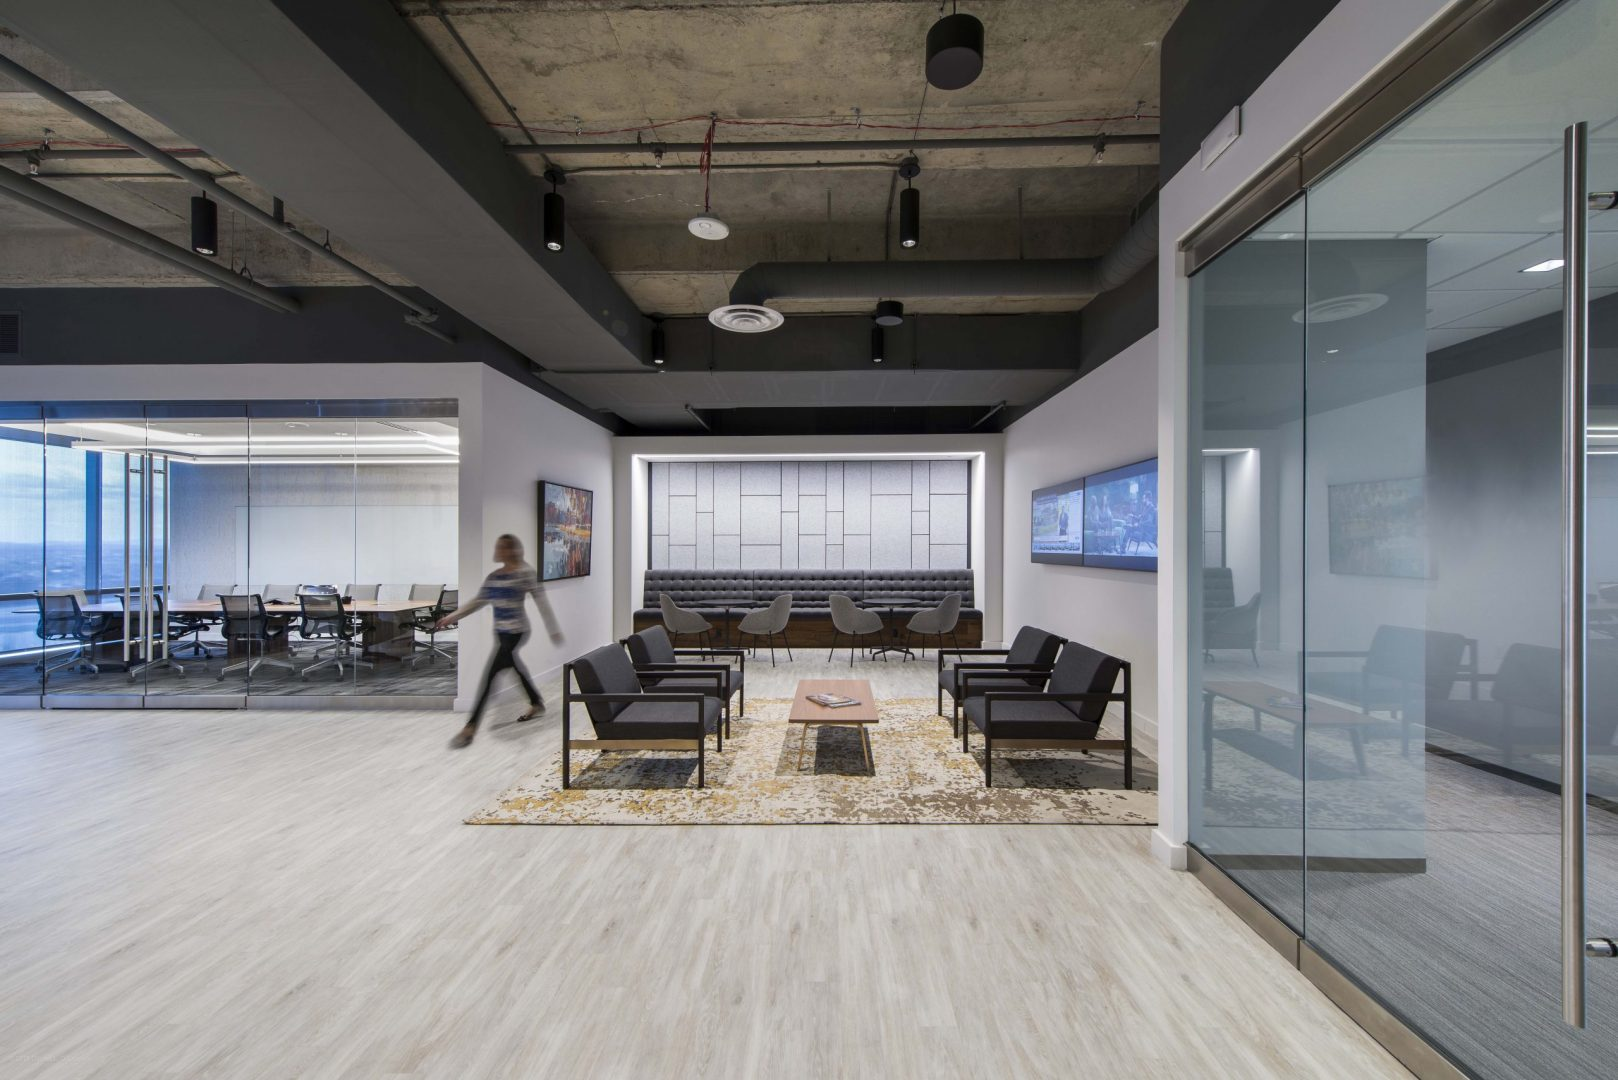 Investment Management Company Denver Corporate Interior Design Event Space Lobby